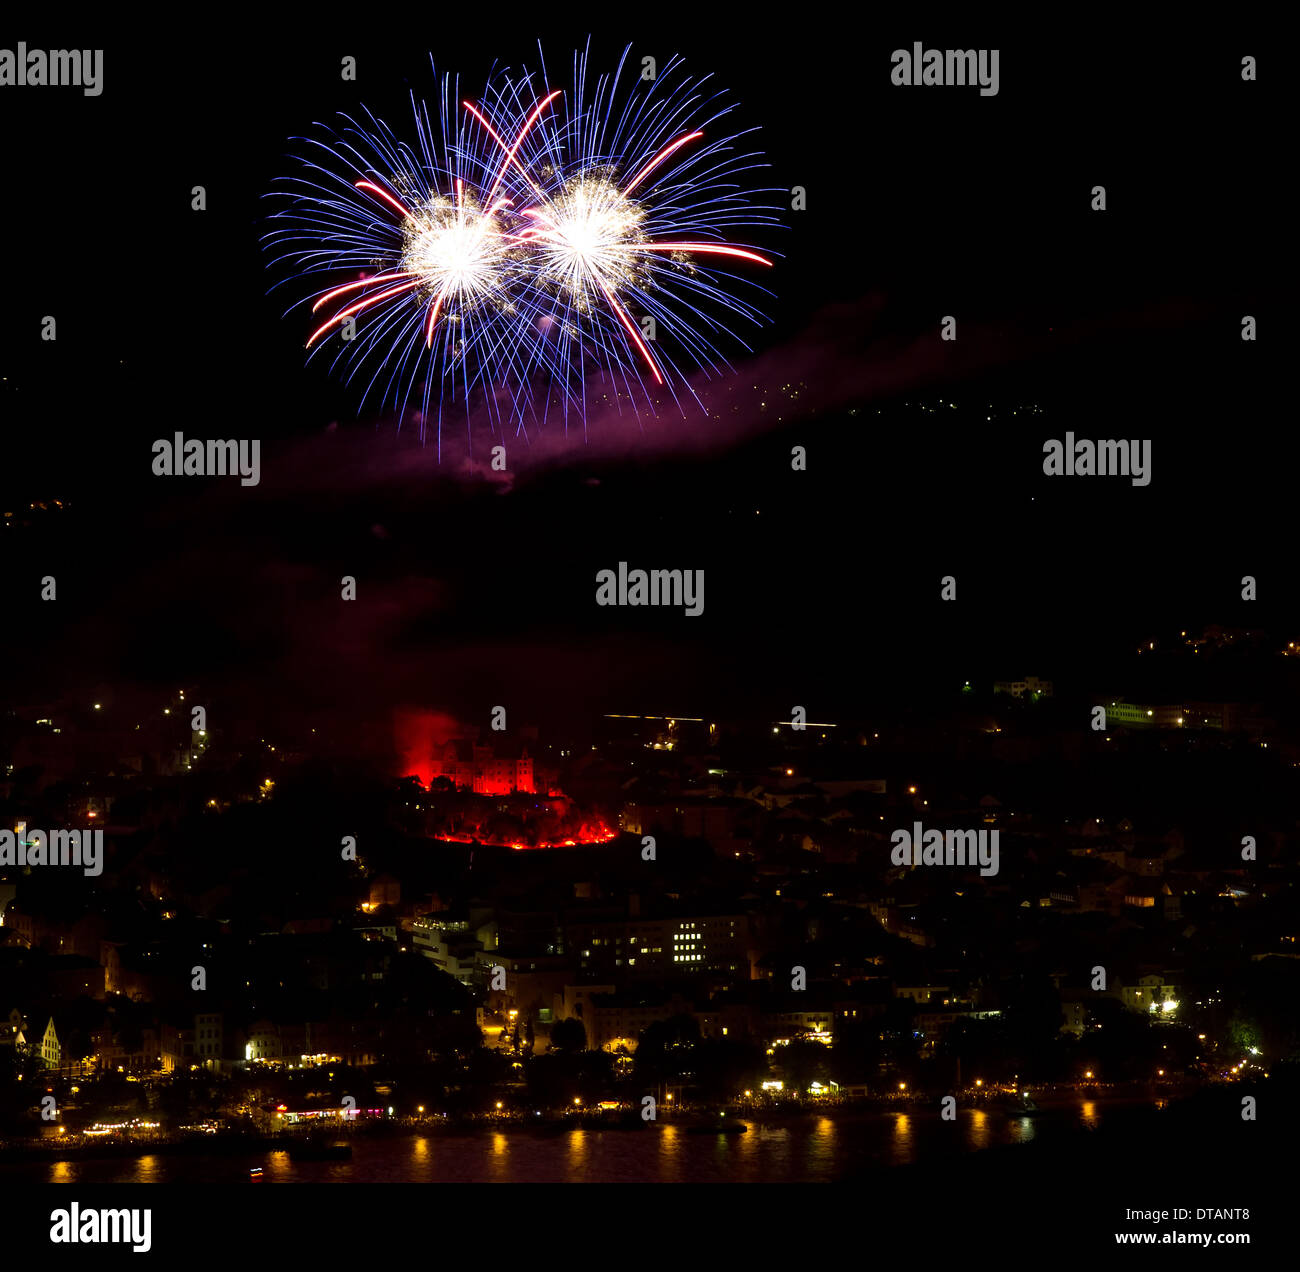 Fireworks over the Rhine river with illuminated castle - Stock Image